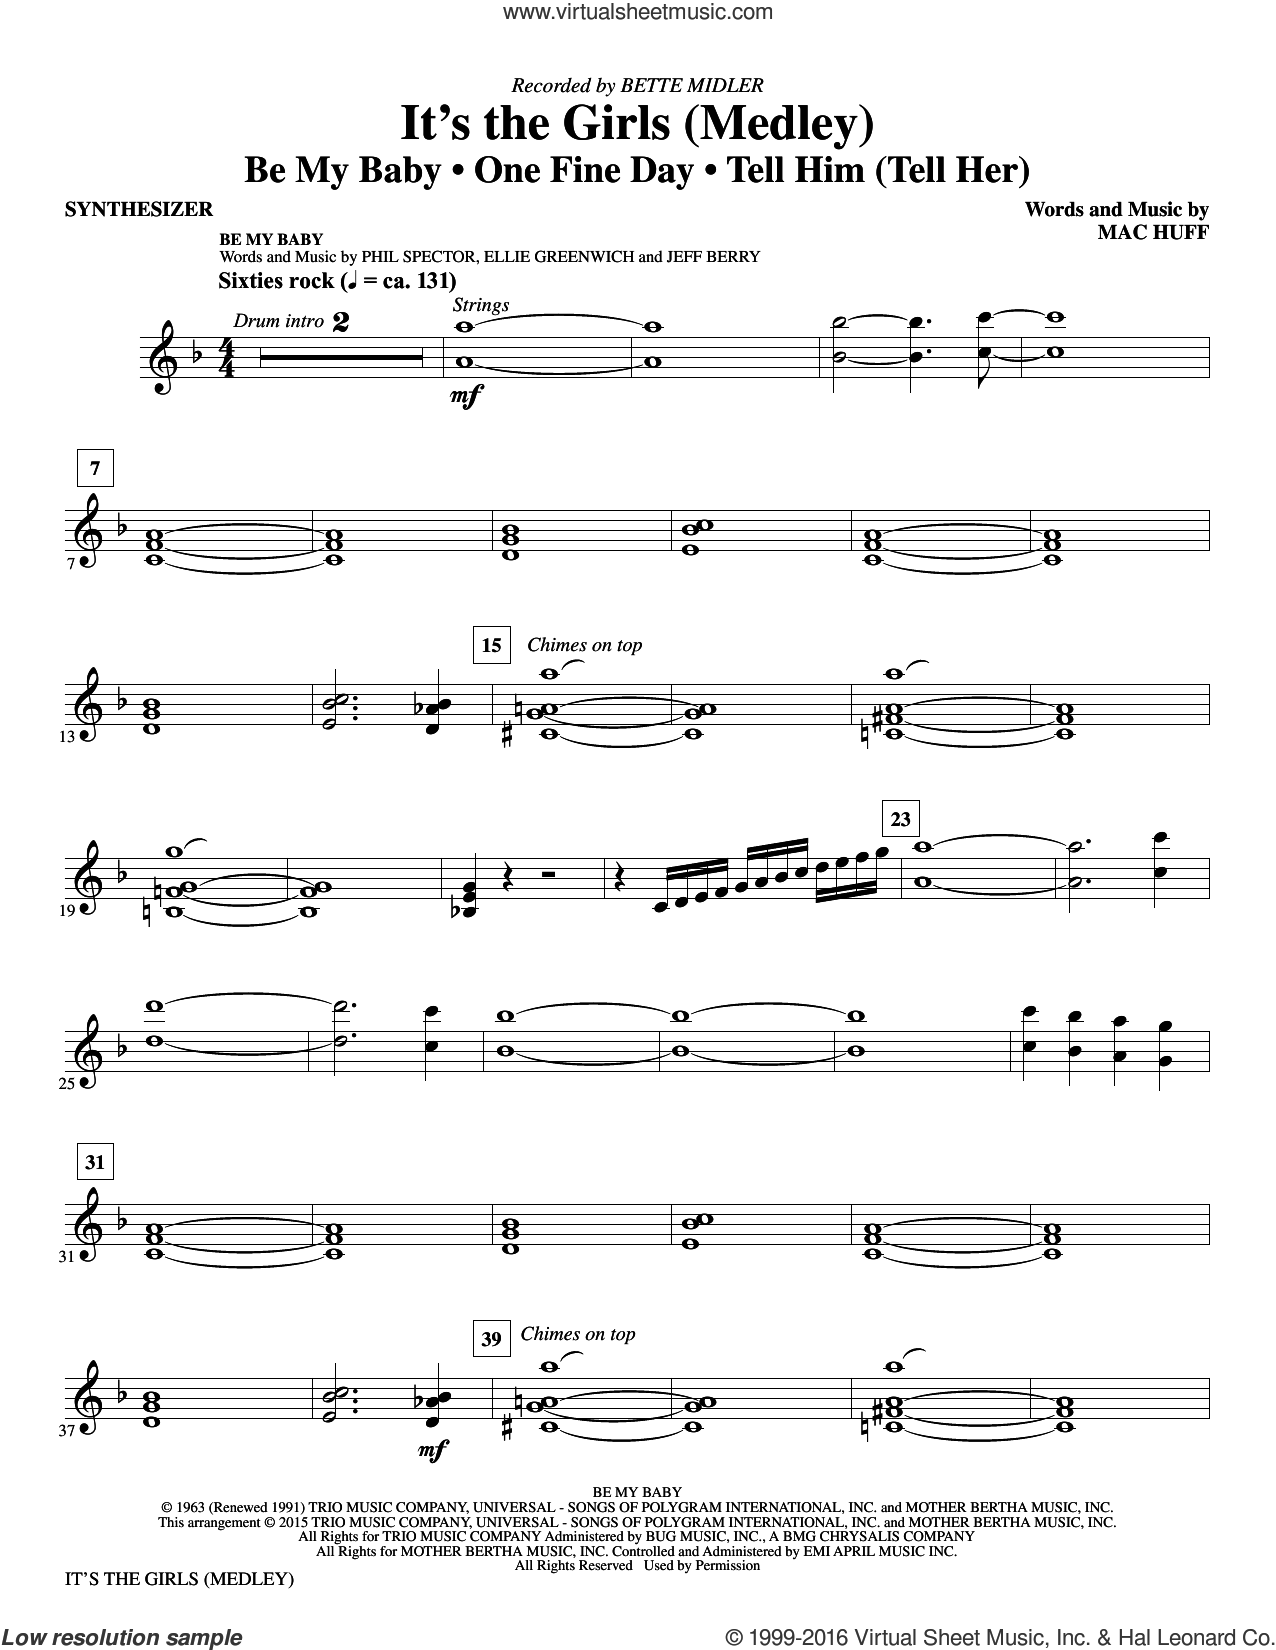 It's the Girls (Medley) sheet music for orchestra/band (synthesizer) by Mac Huff, Bette Midler, Ellie Greenwich, Jeff Barry, Phil Spector and Ronettes, intermediate orchestra/band (synthesizer). Score Image Preview.